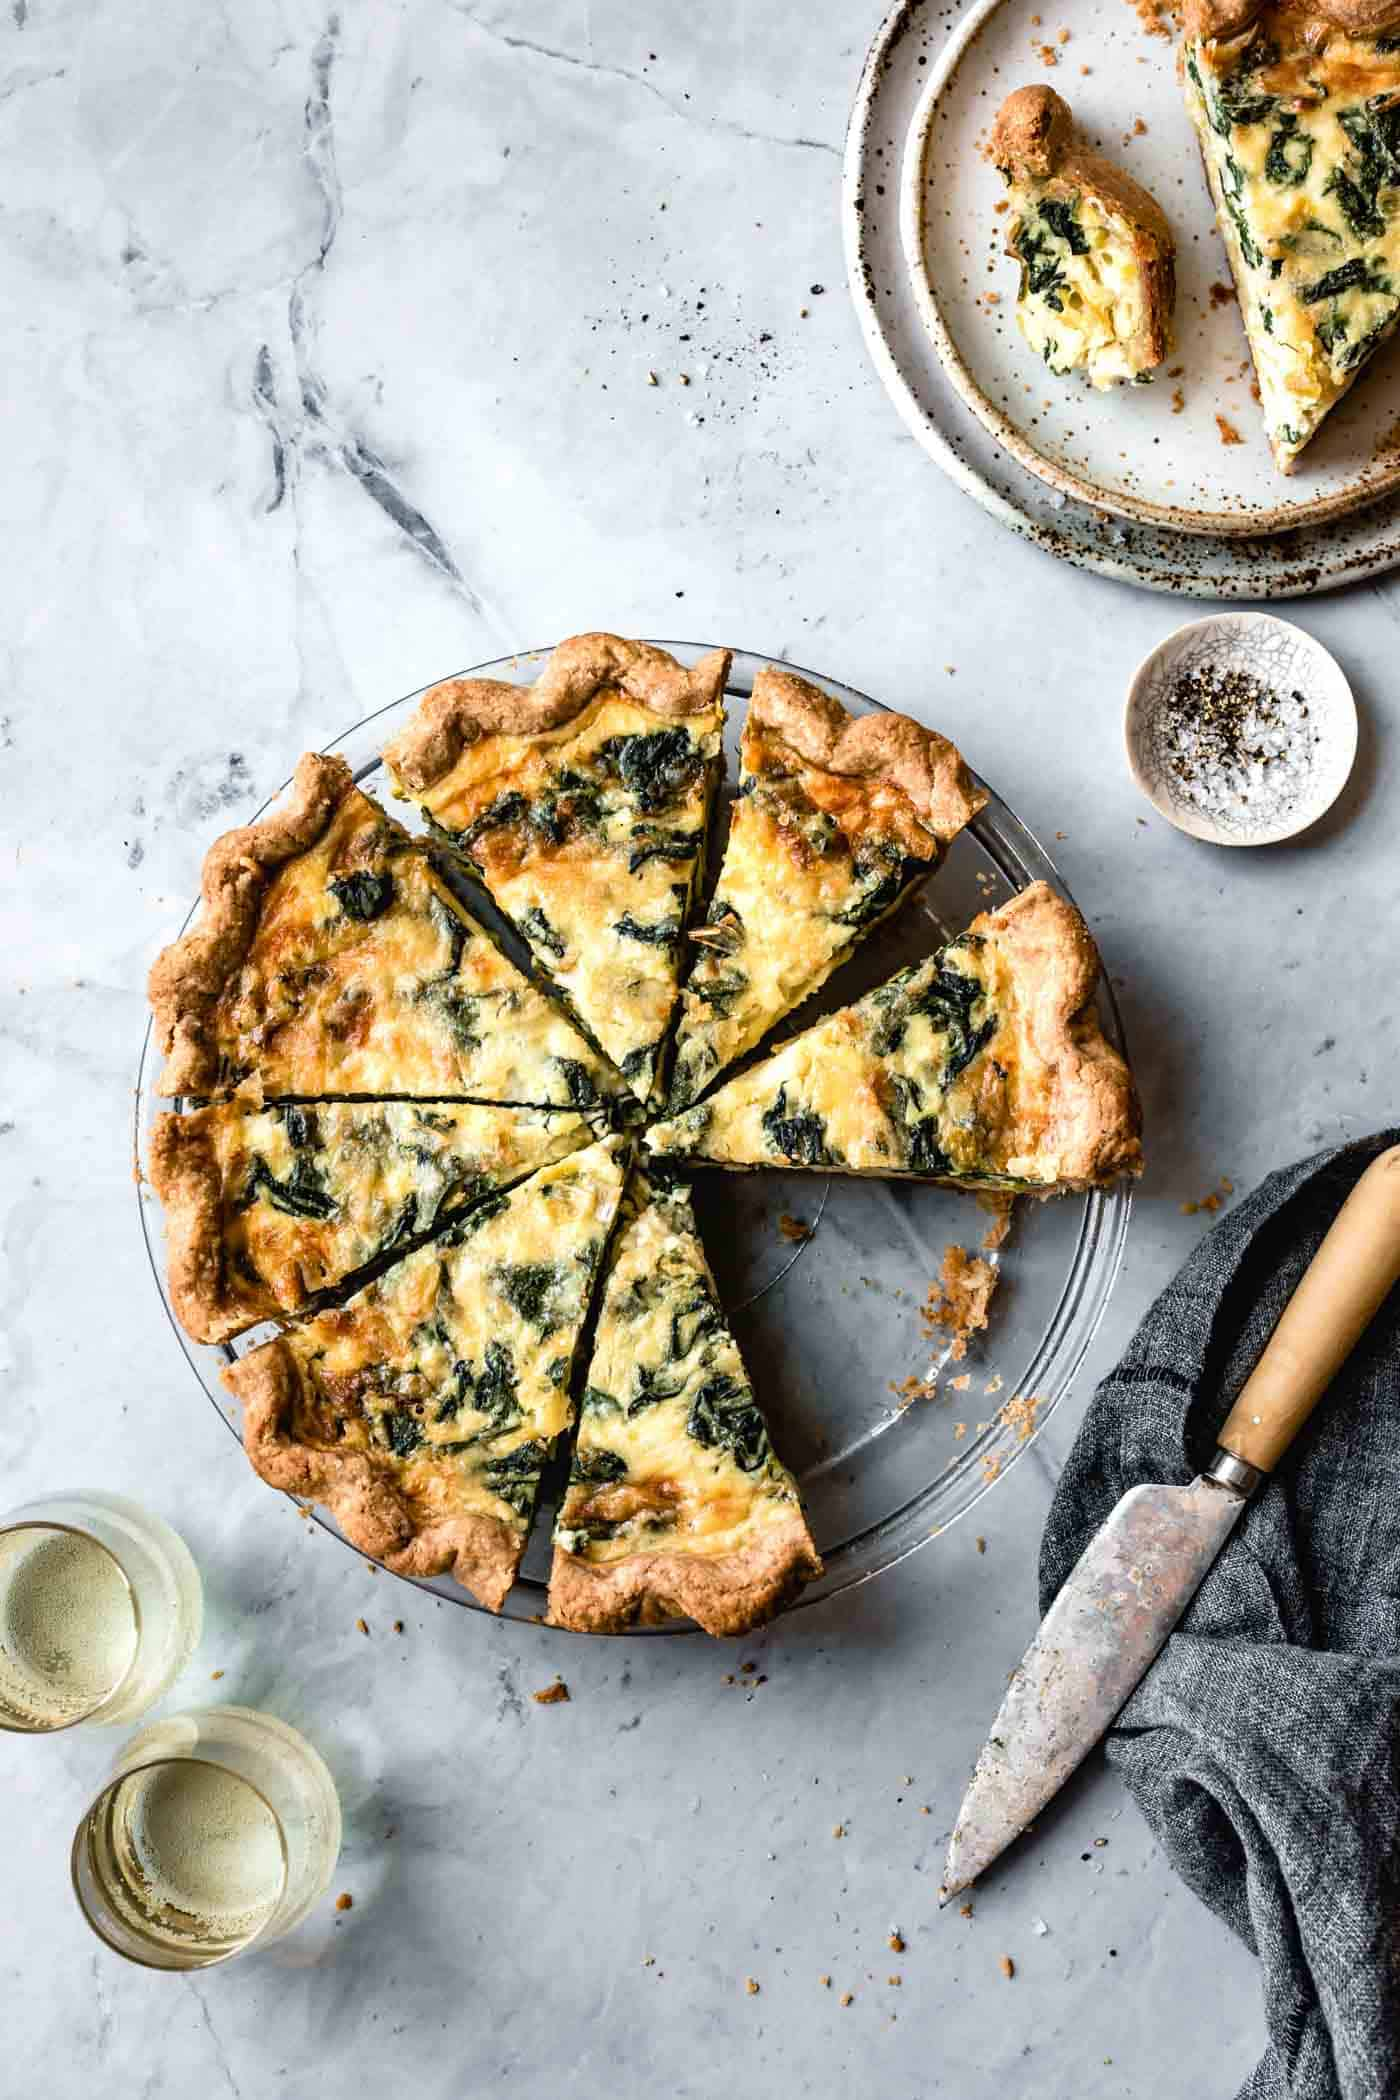 overhead of sliced spinach and leek quiche recipe on marble surface with white wine, plates, and utensils